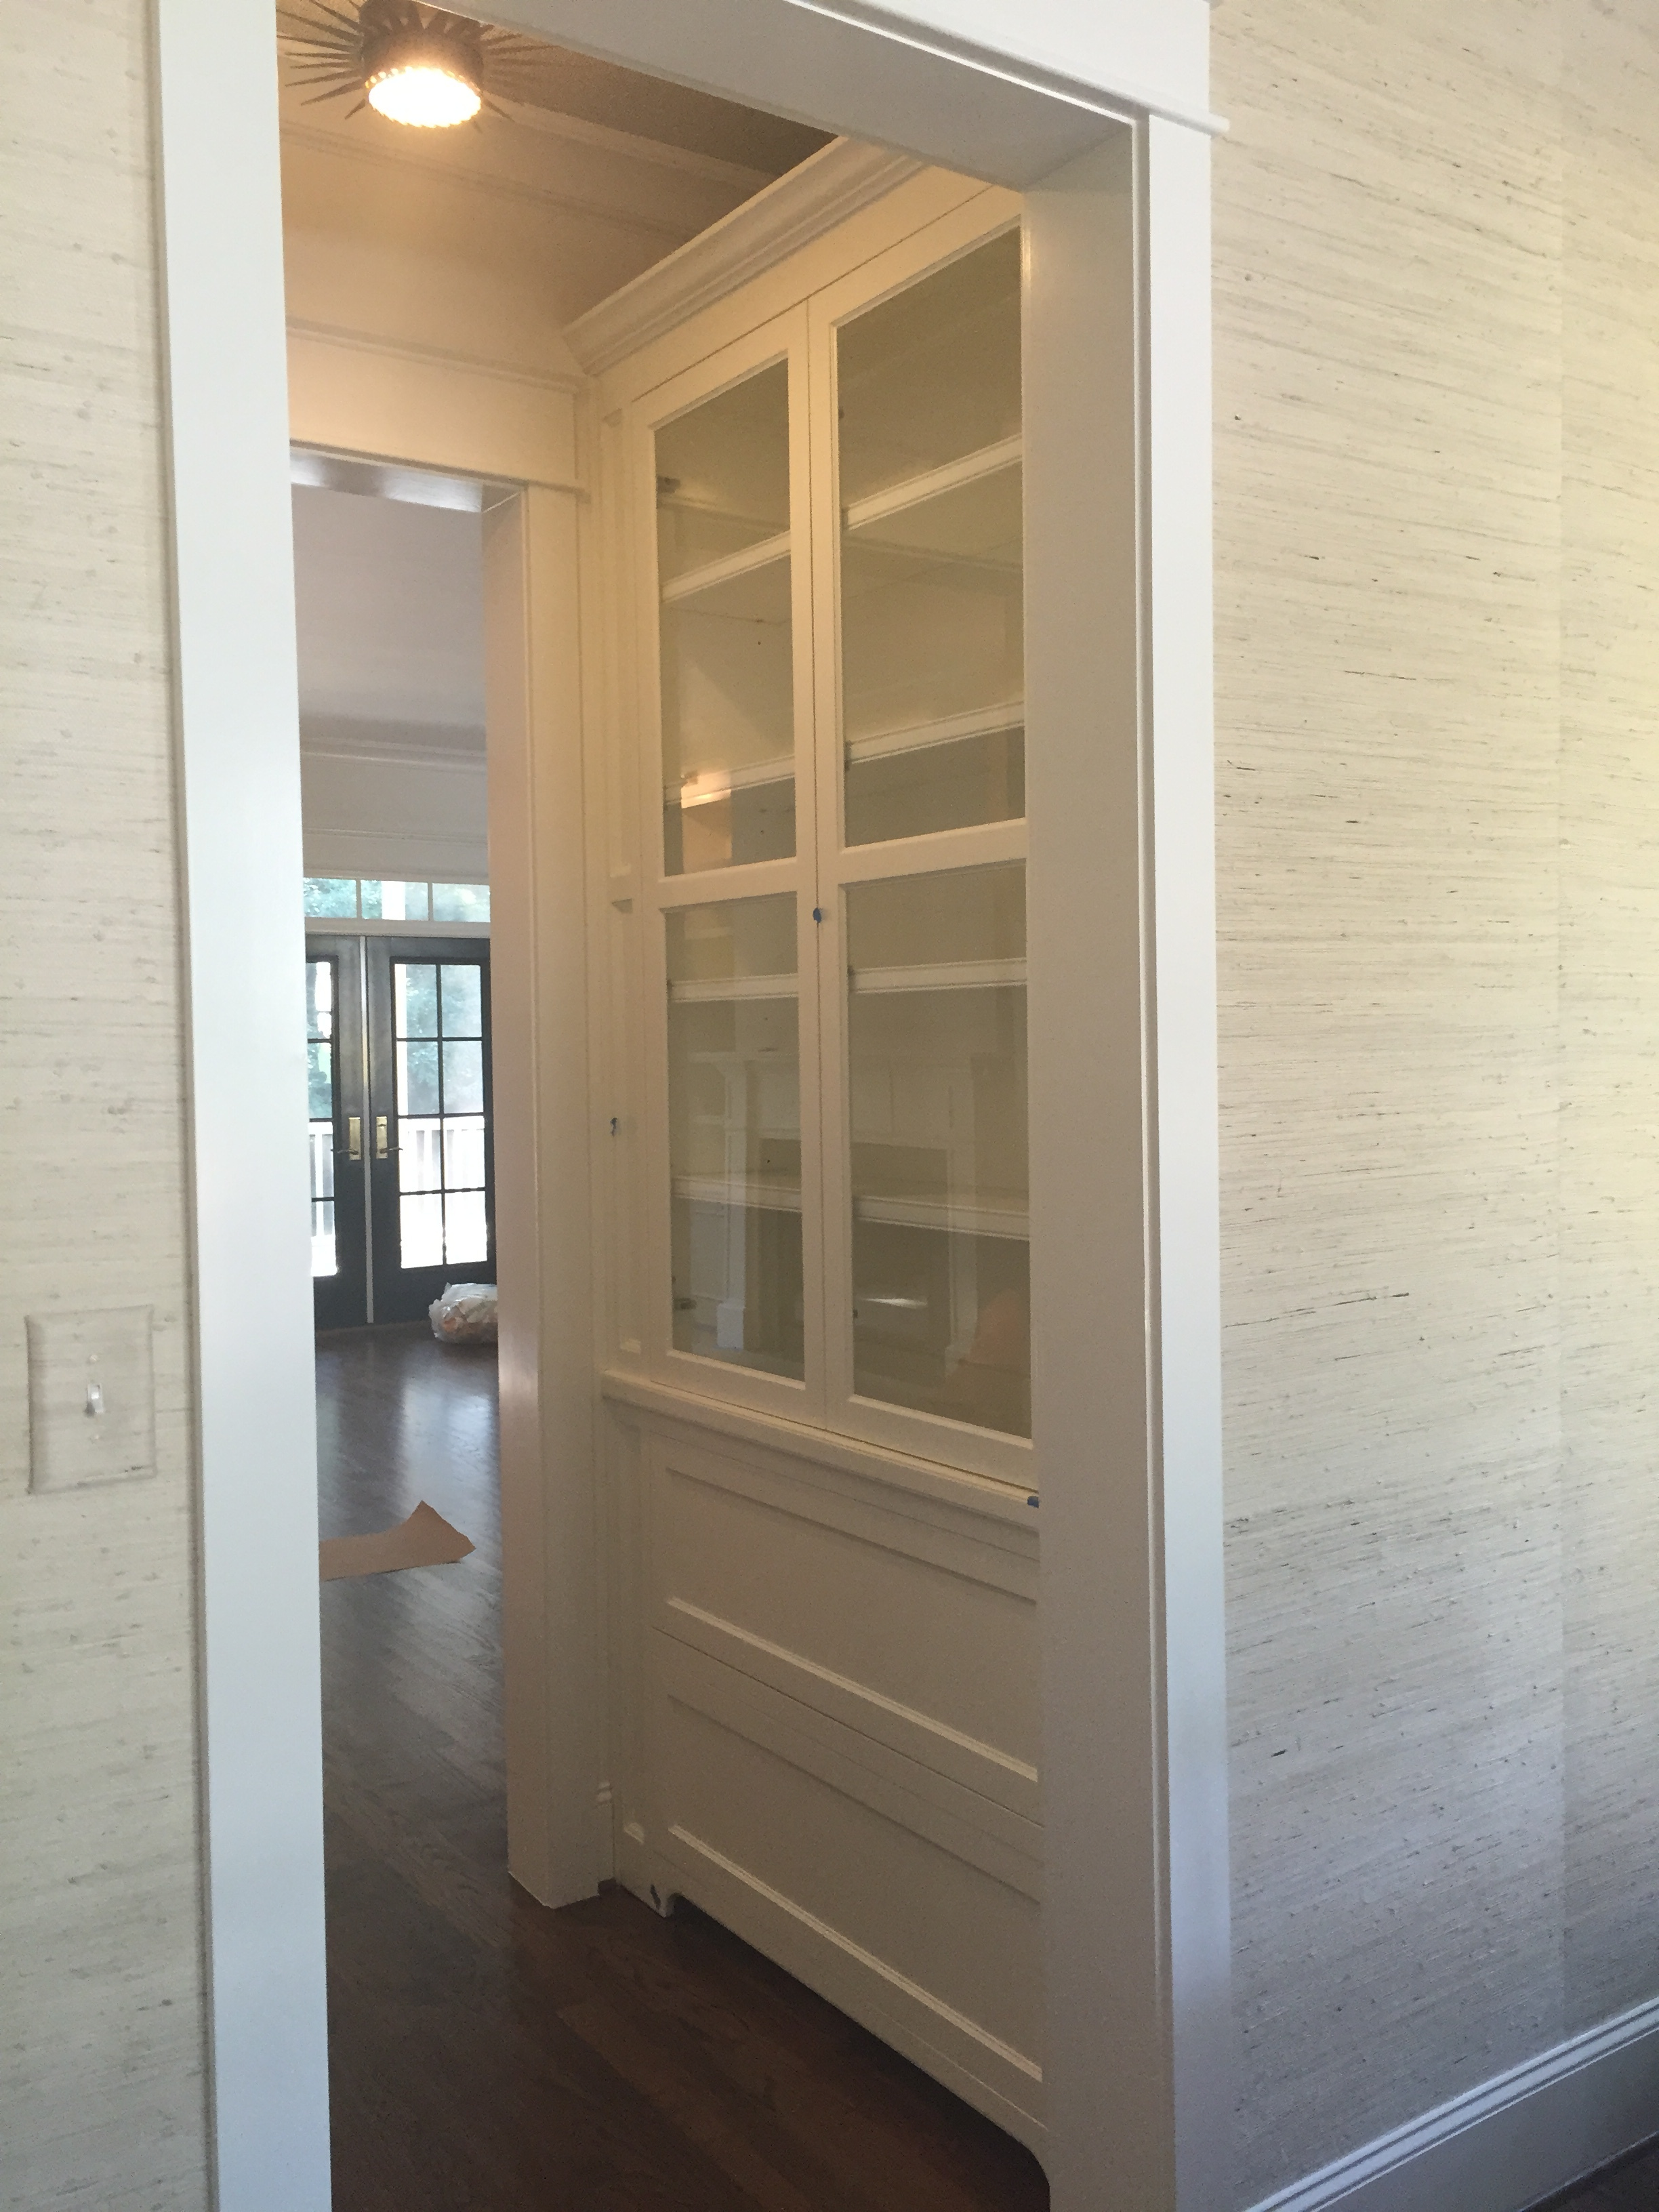 Custom Flush Butler's Pantry with Clear Glass Shelves, Inset Doors, Toe-Kick, and Crown